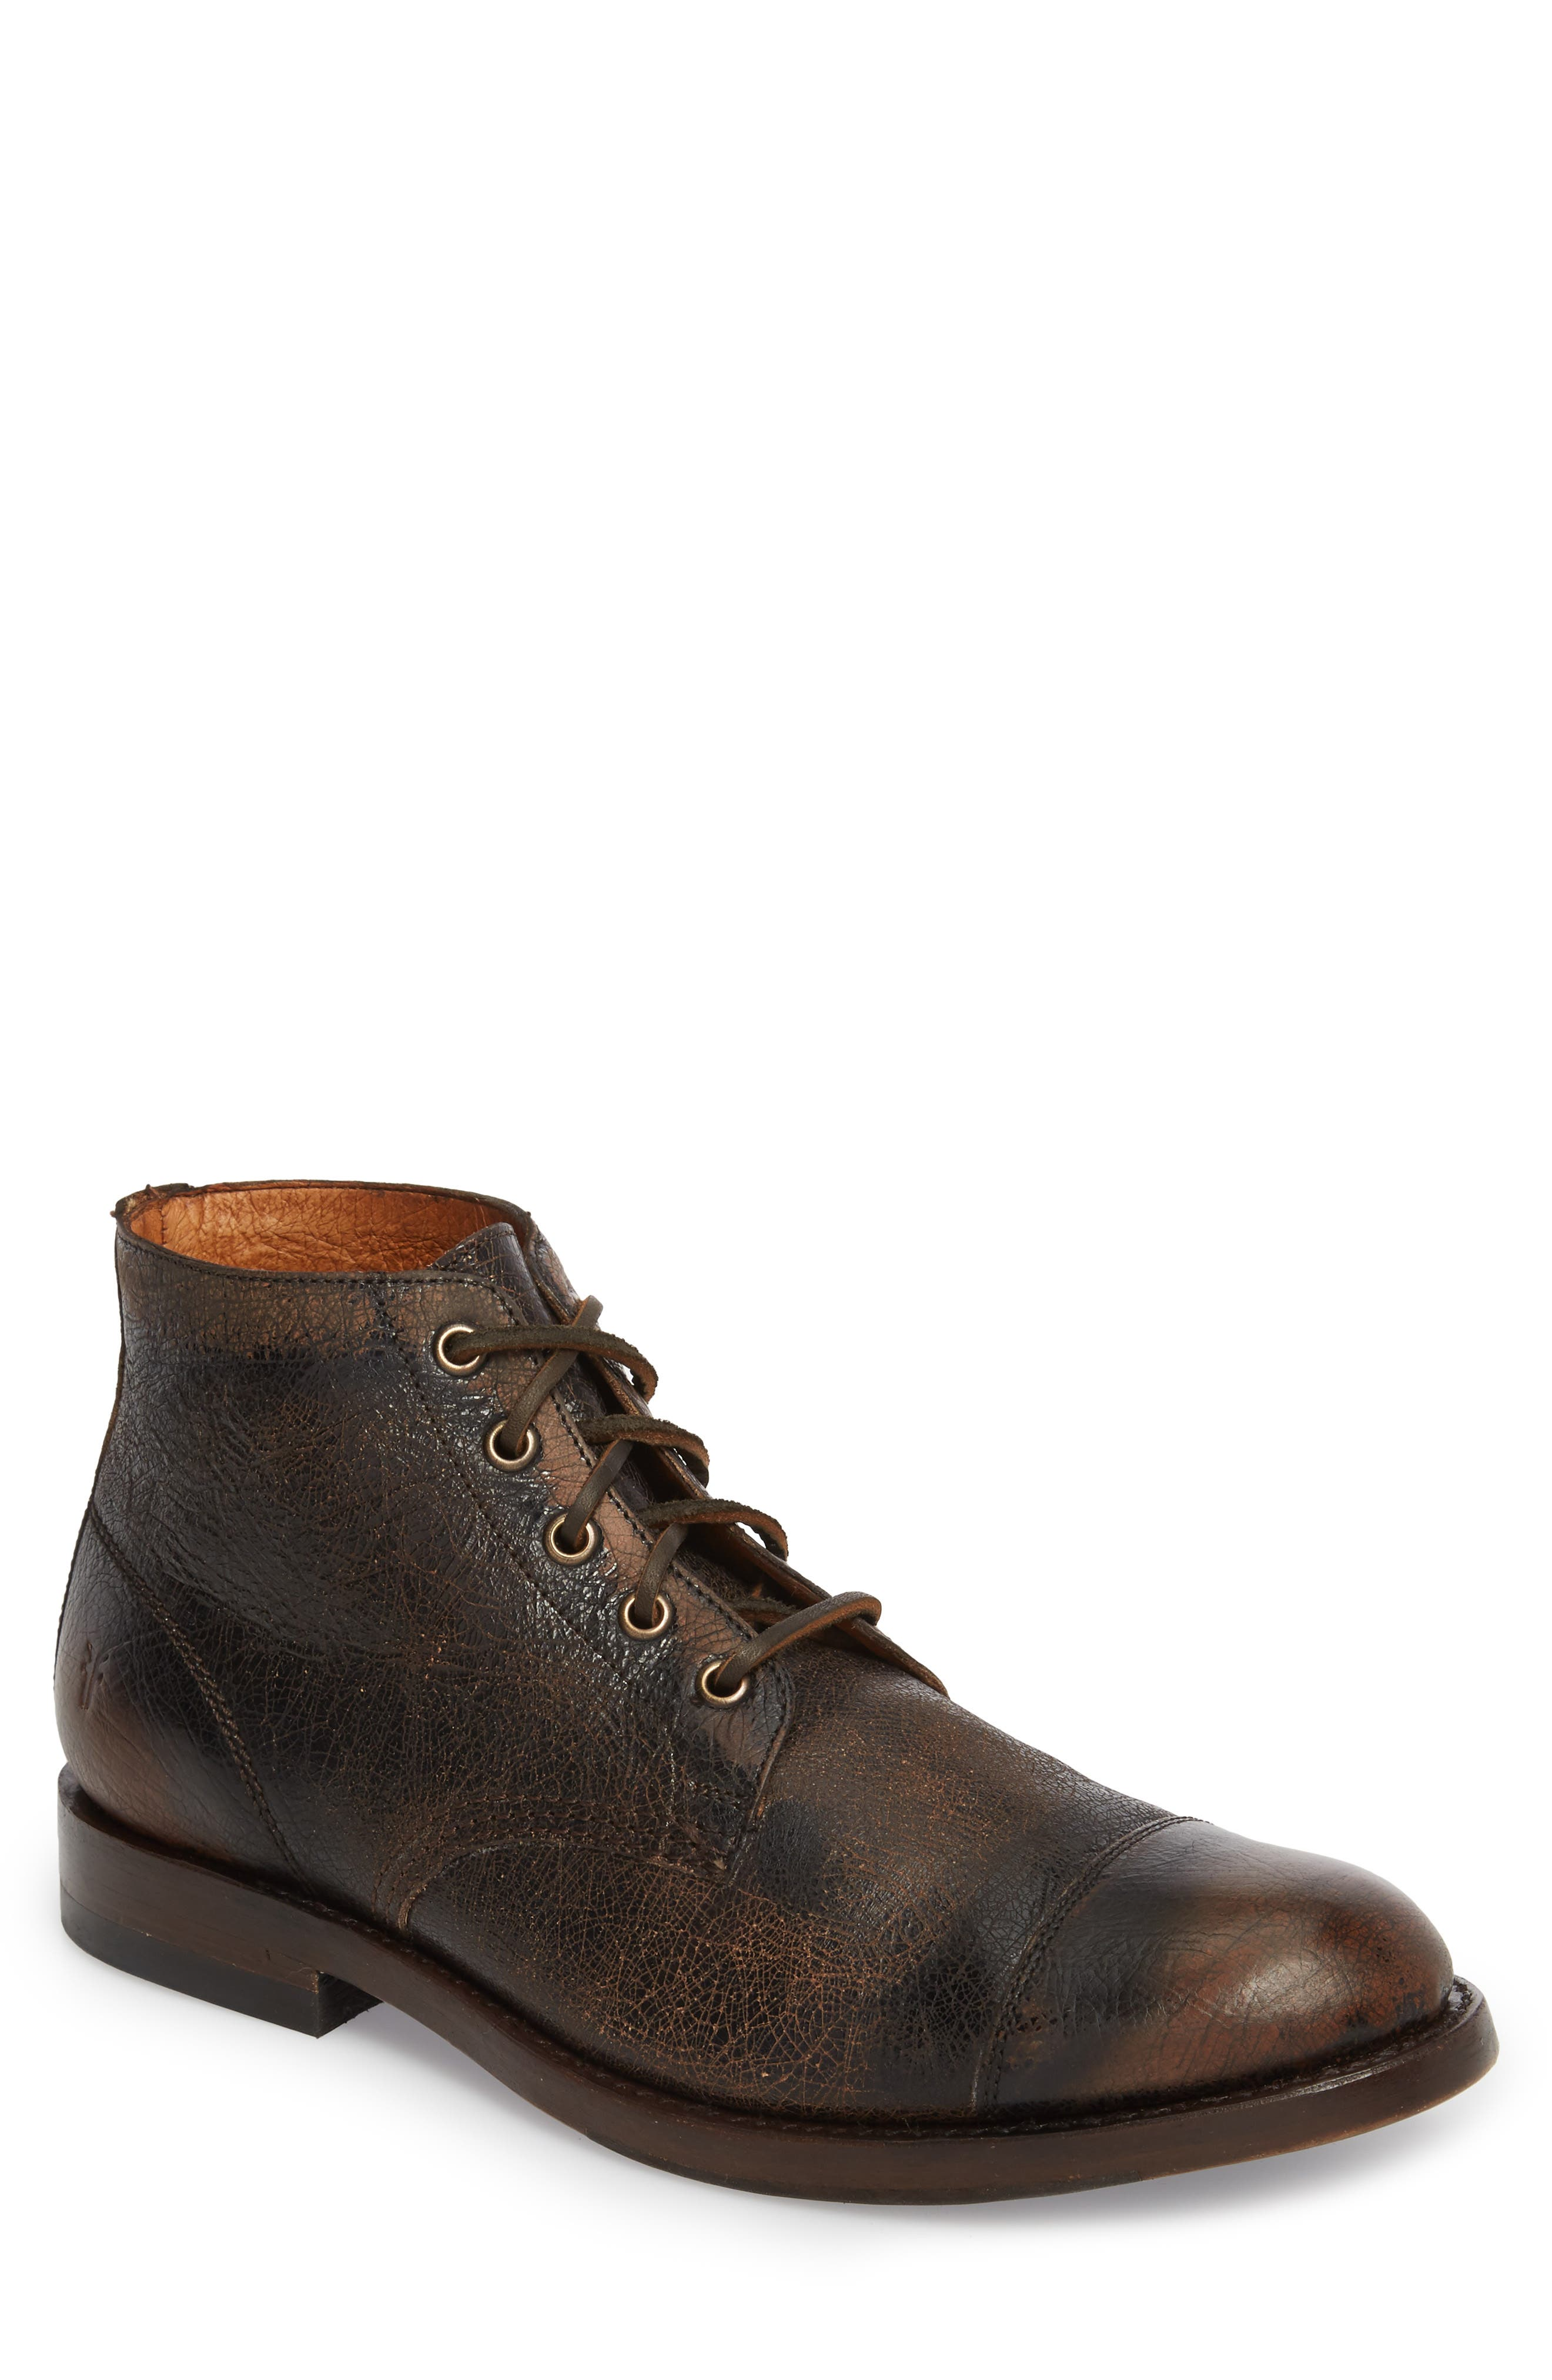 Will Chukka Boot,                         Main,                         color, DARK BROWN LEATHER